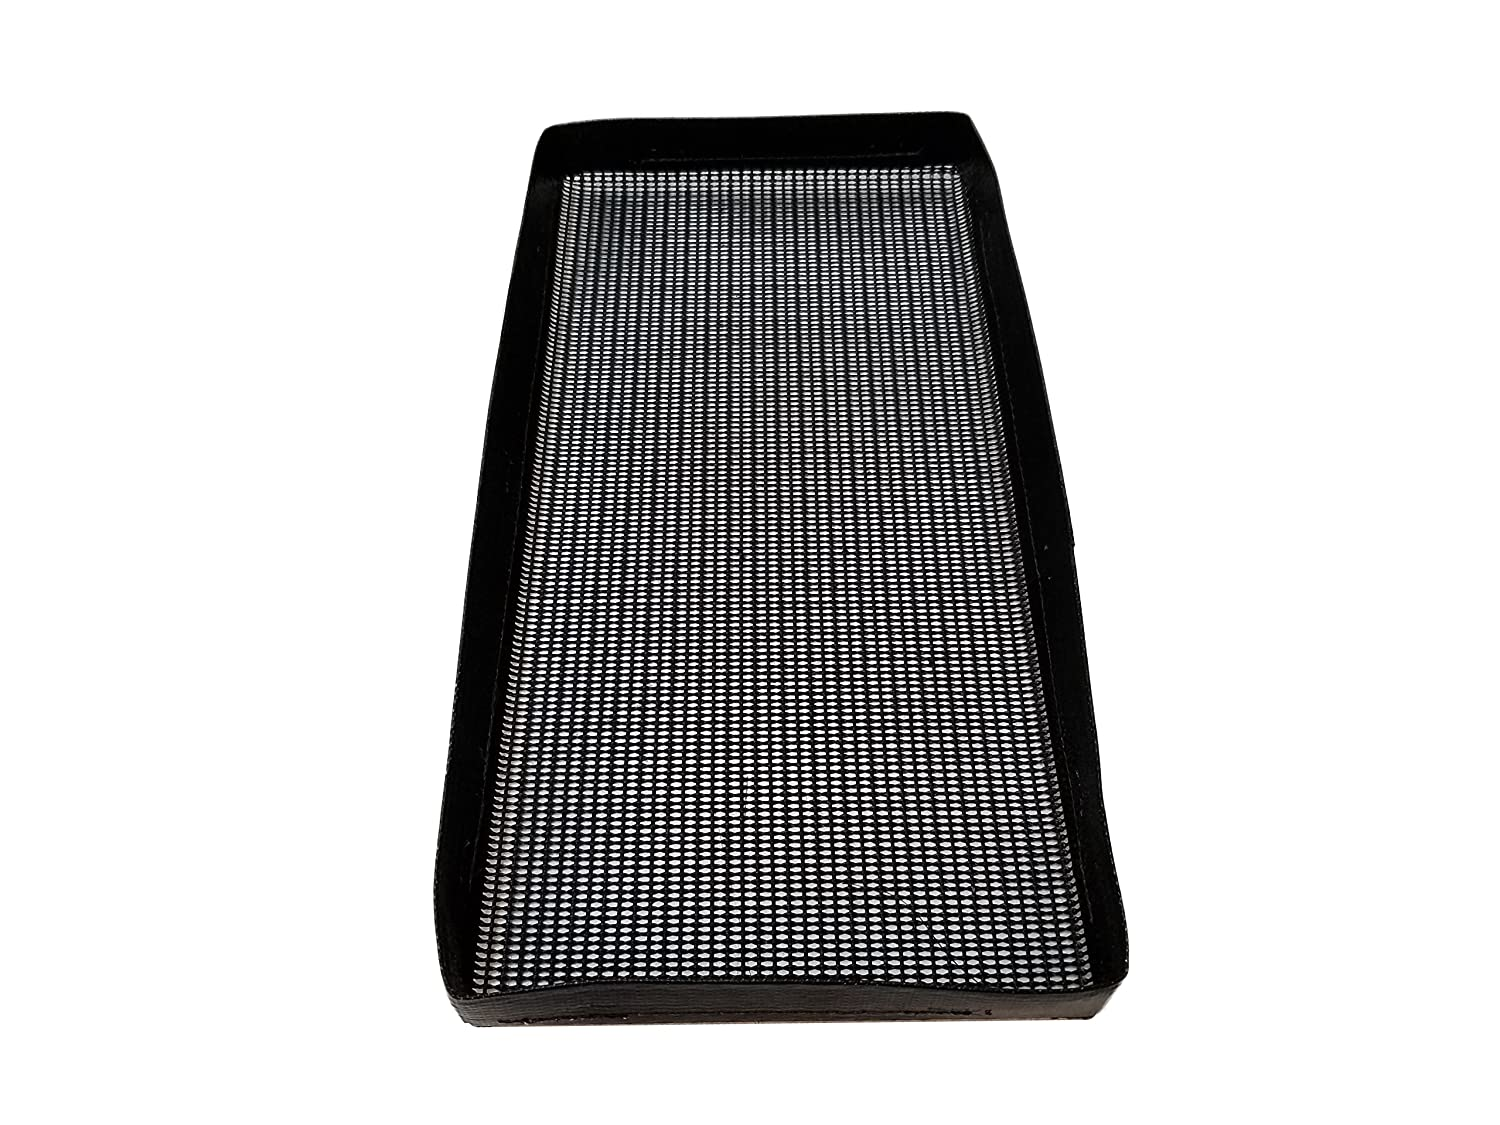 """6"""" x 12"""" PTFE Fine Mesh Oven basket for Turbo Chef, Merrychef, and Amana (Replaces SB10)"""